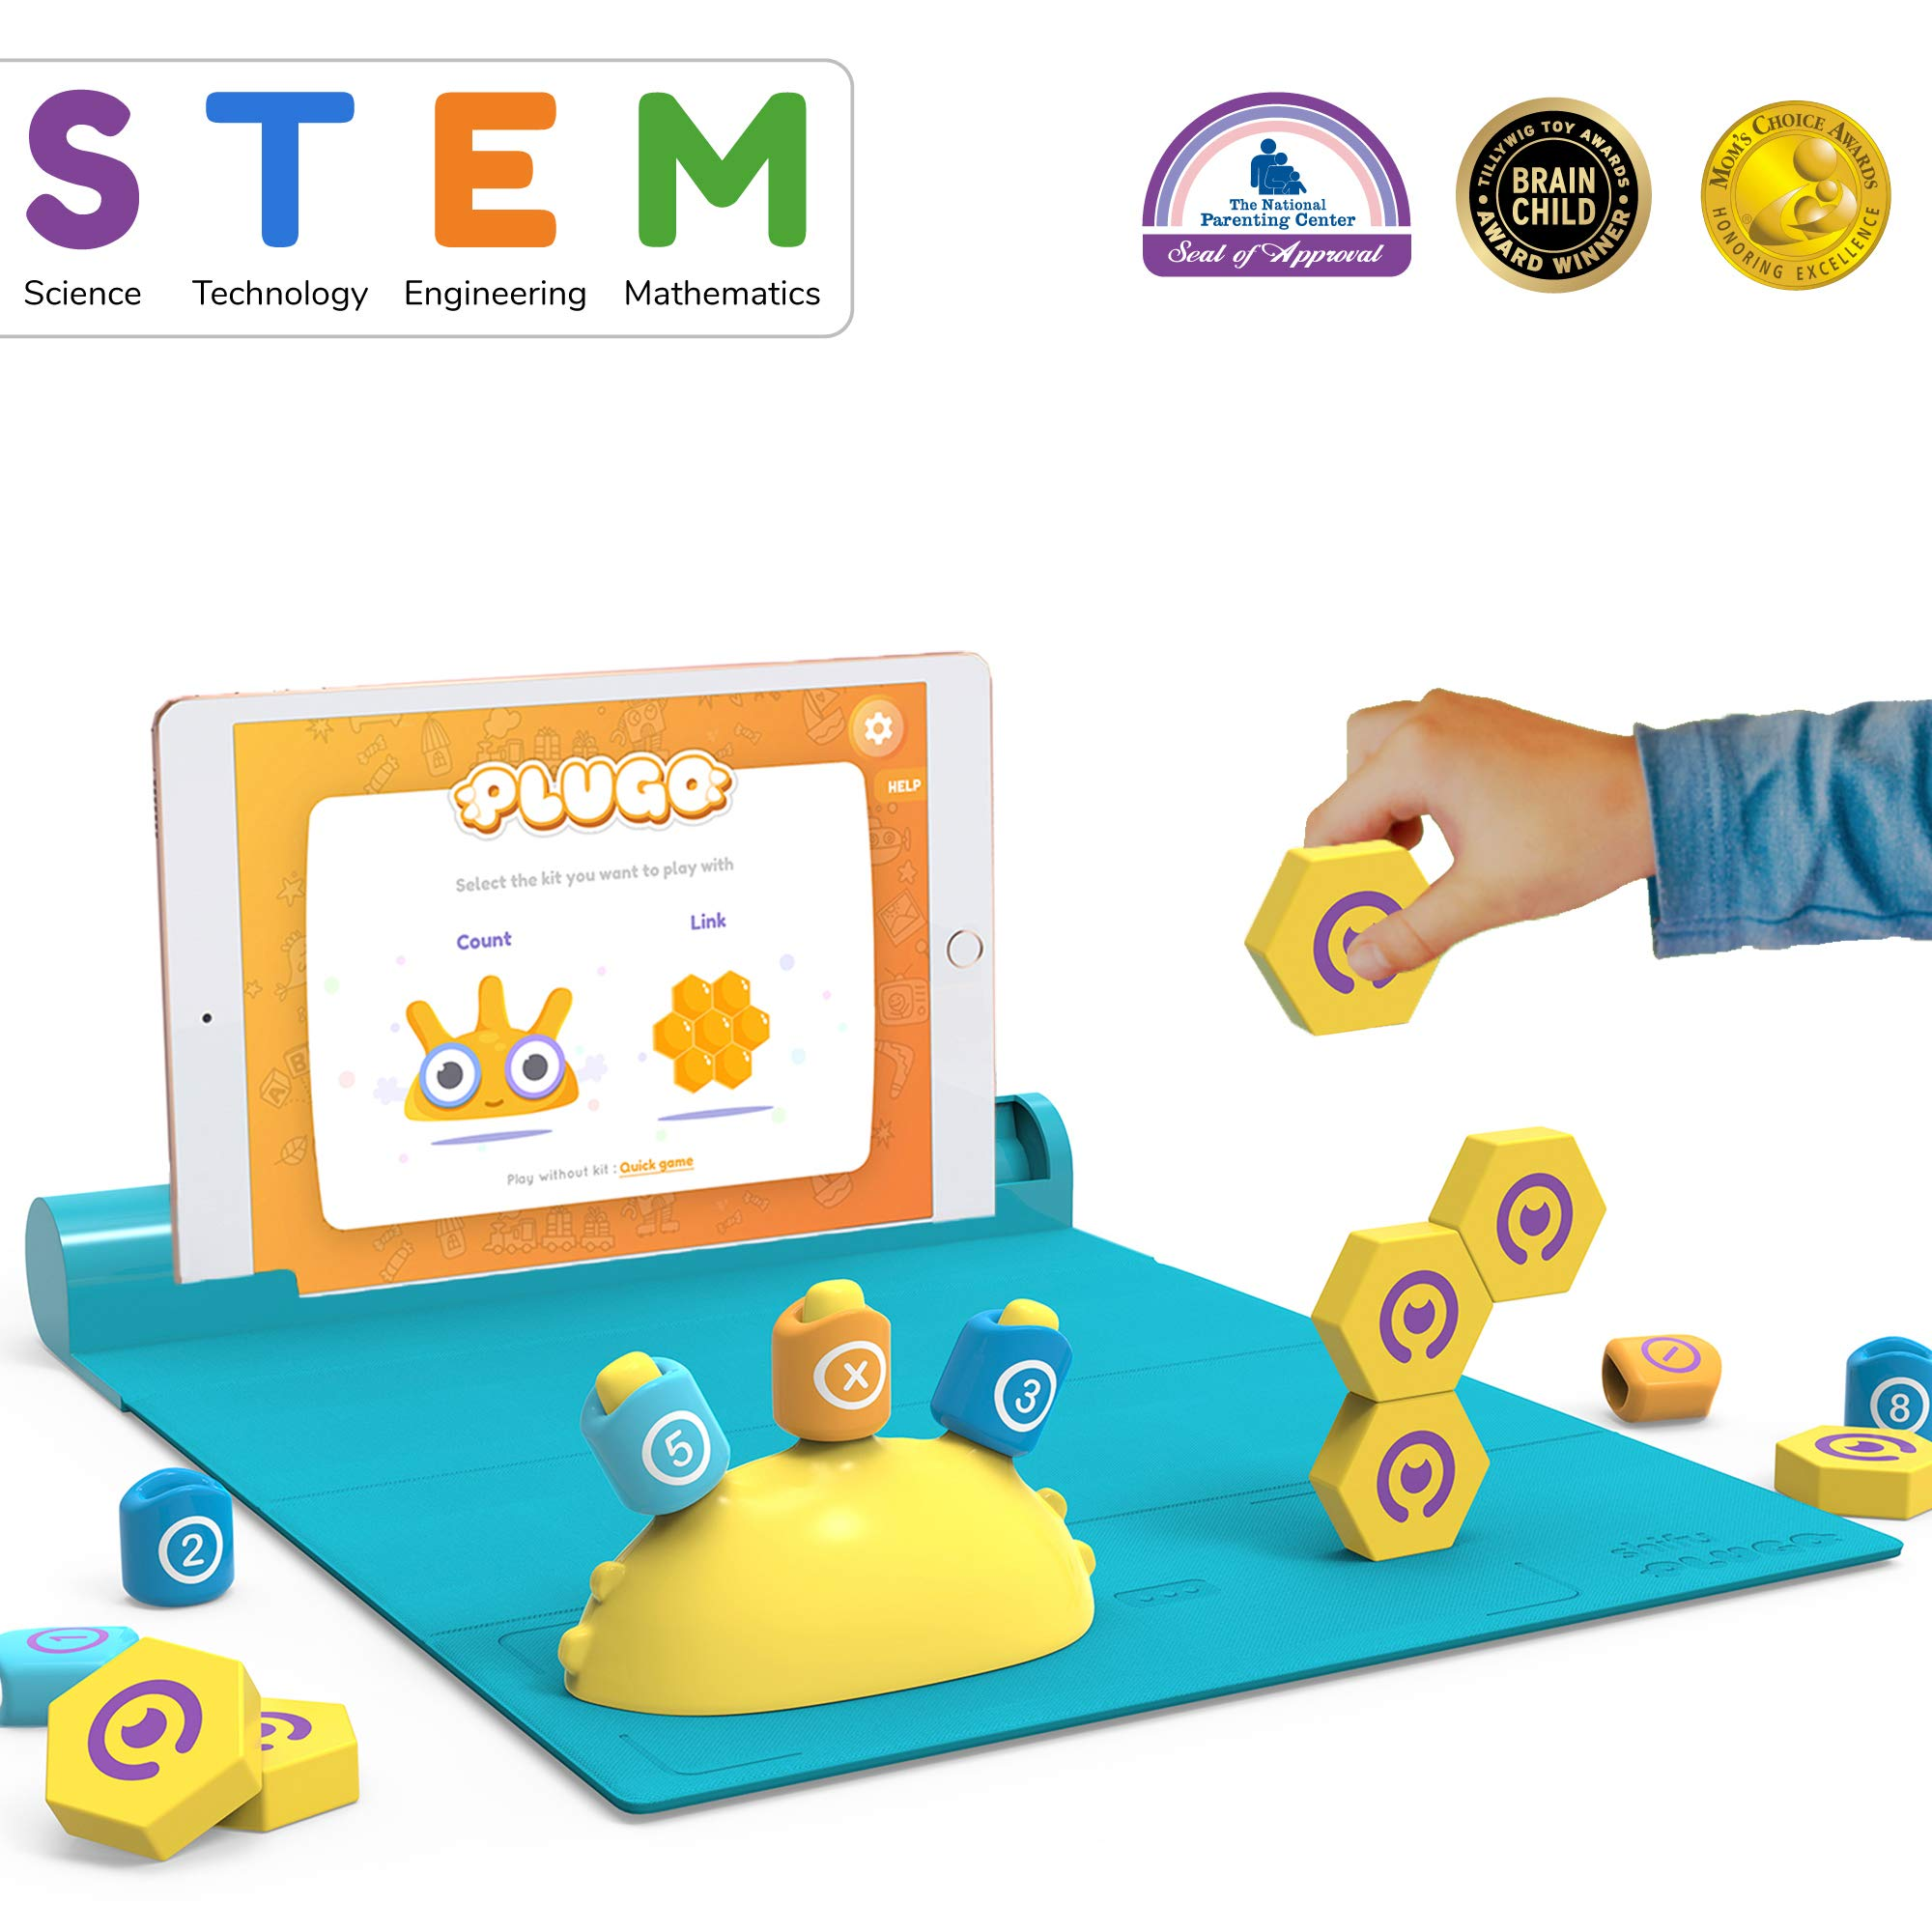 Shifu Plugo STEM Pack - Math & Construction (Link & Count), Augmented Reality Games with Fun Building Blocks | Cool Math Game for Ages 5 - 10 Years Boys & Girls Pre-K to Grade 5 (iOS/Samsung Devices) by Shifu